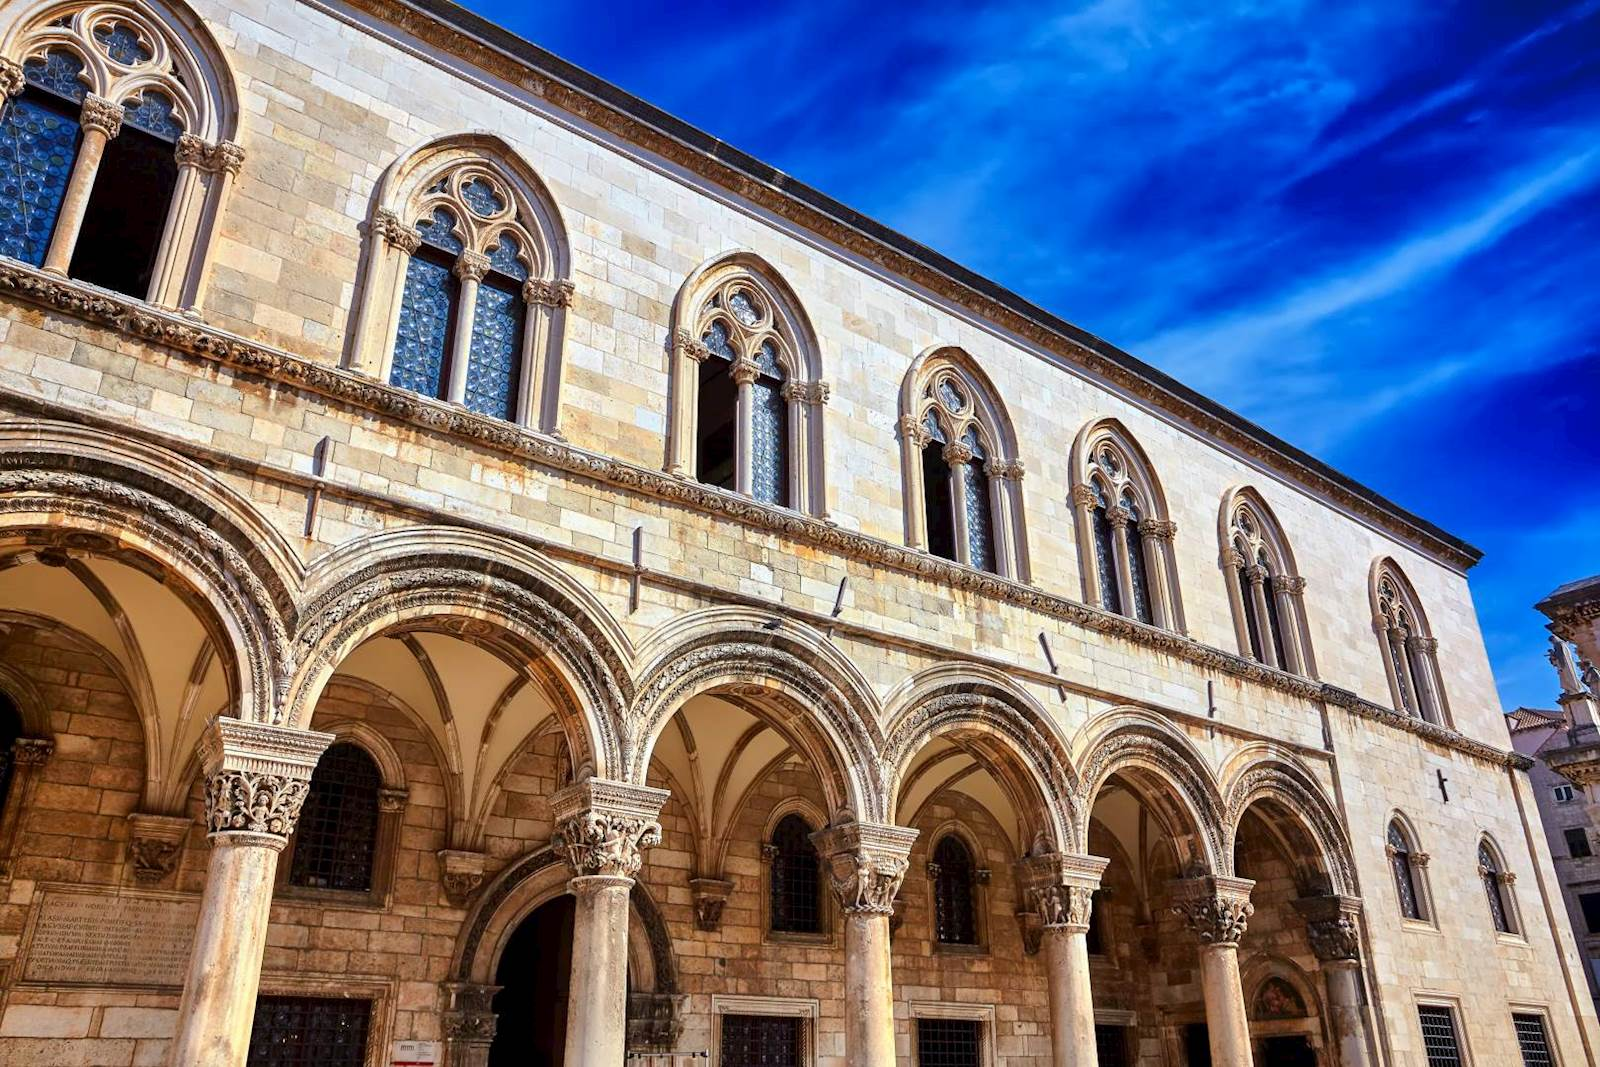 -images-excursions-discover-dubrovnik--25-dubrovnik-old-town-rectors-pallace-outside.jpg